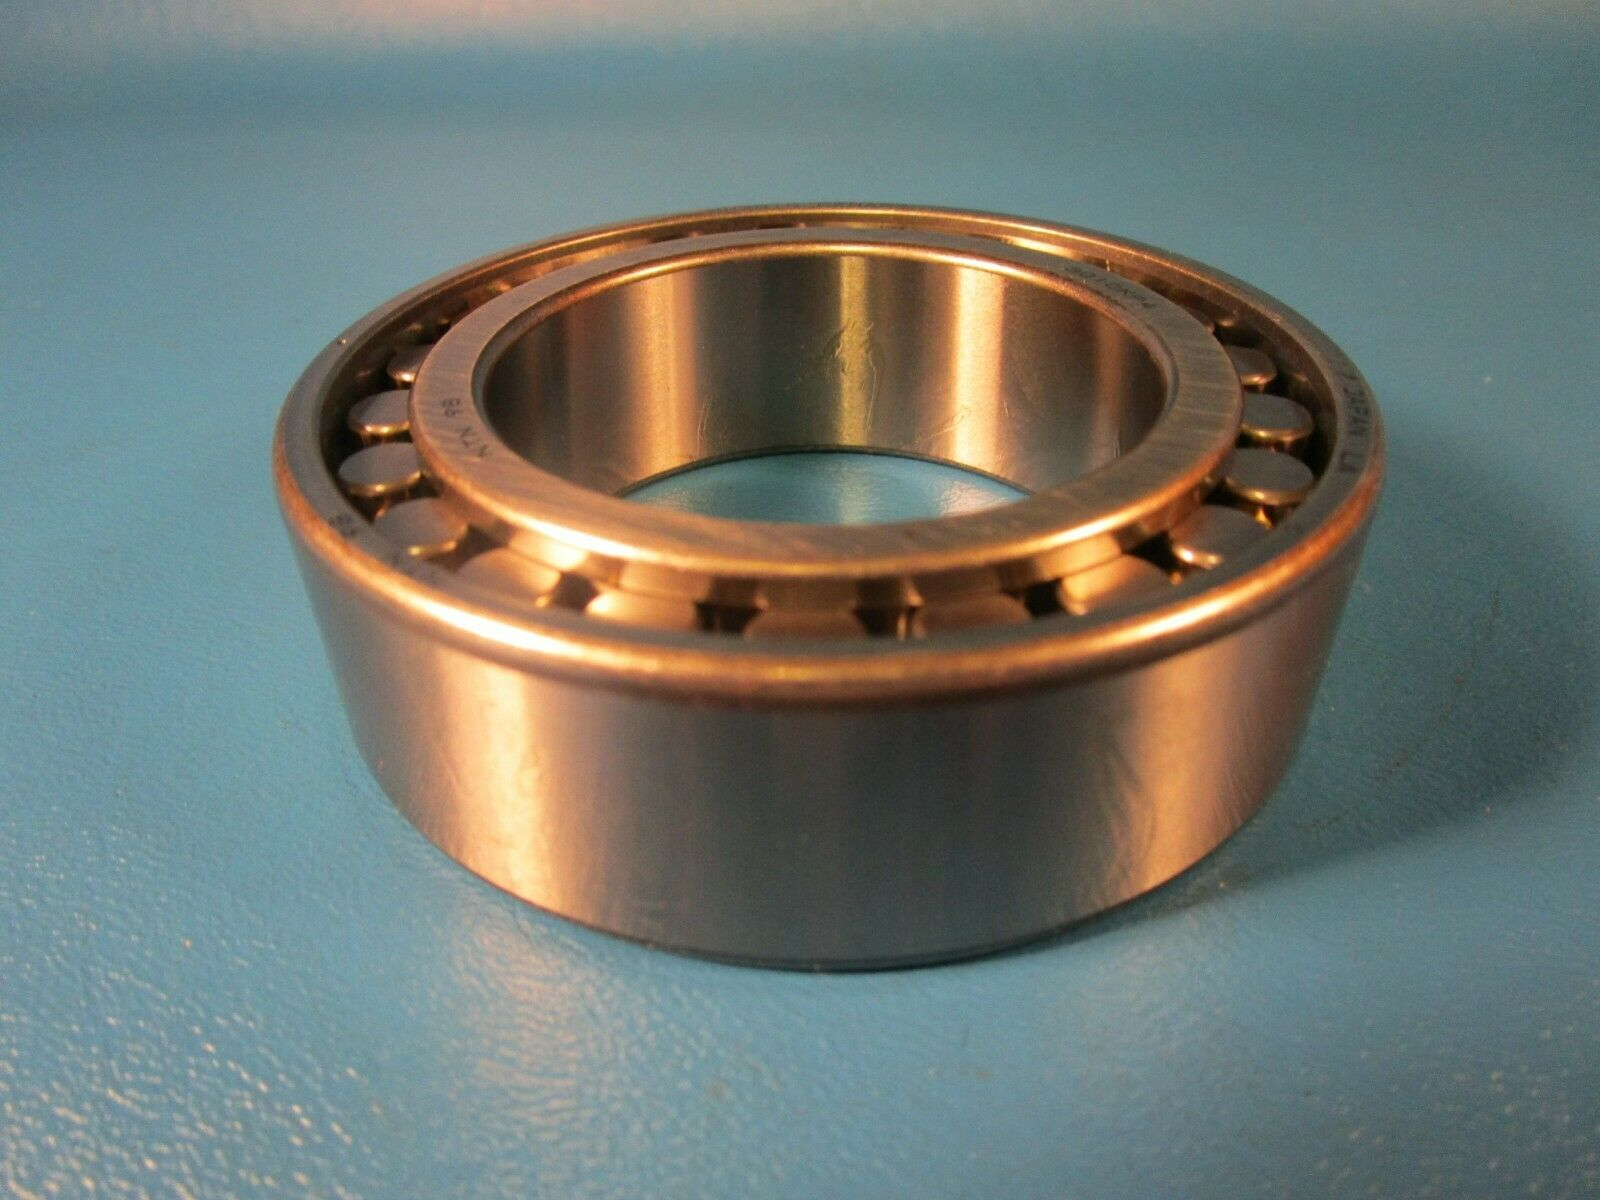 NN3010M2KC1NA P4 Nachi Cylindrical Roller Bearing Tapered Bore Japan 50x80x23 Cy